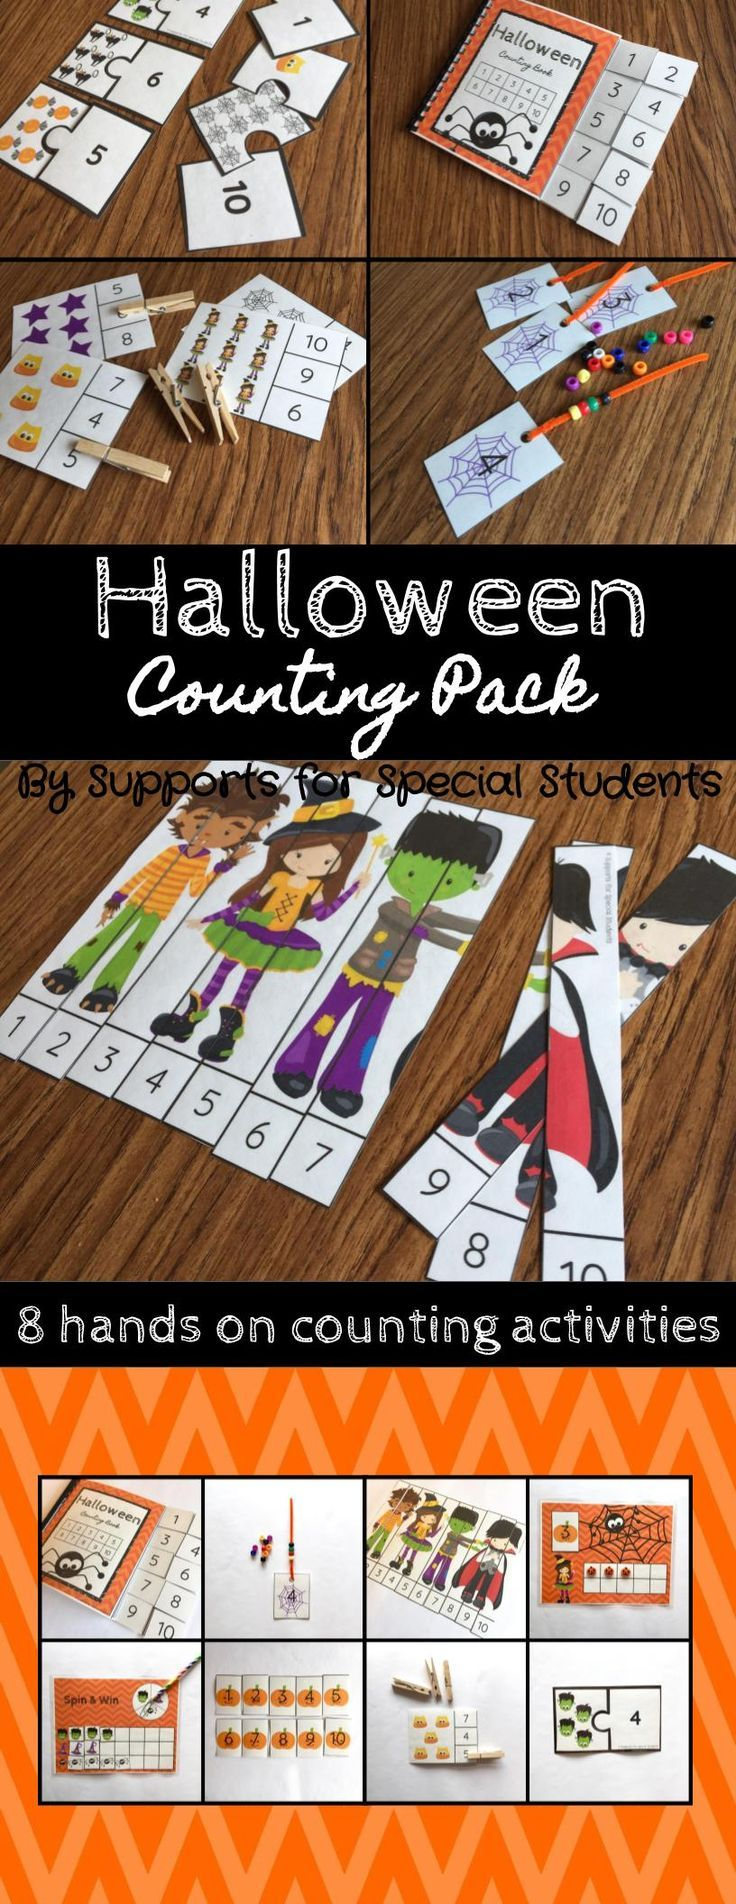 Halloween Counting Pack by Supports for Special Students - This resource is perfect for preschool, kindergarten or a special education classroom. There are 8 hands-on activities that focus on numbers 1-20 included in this pack. These activities can be use